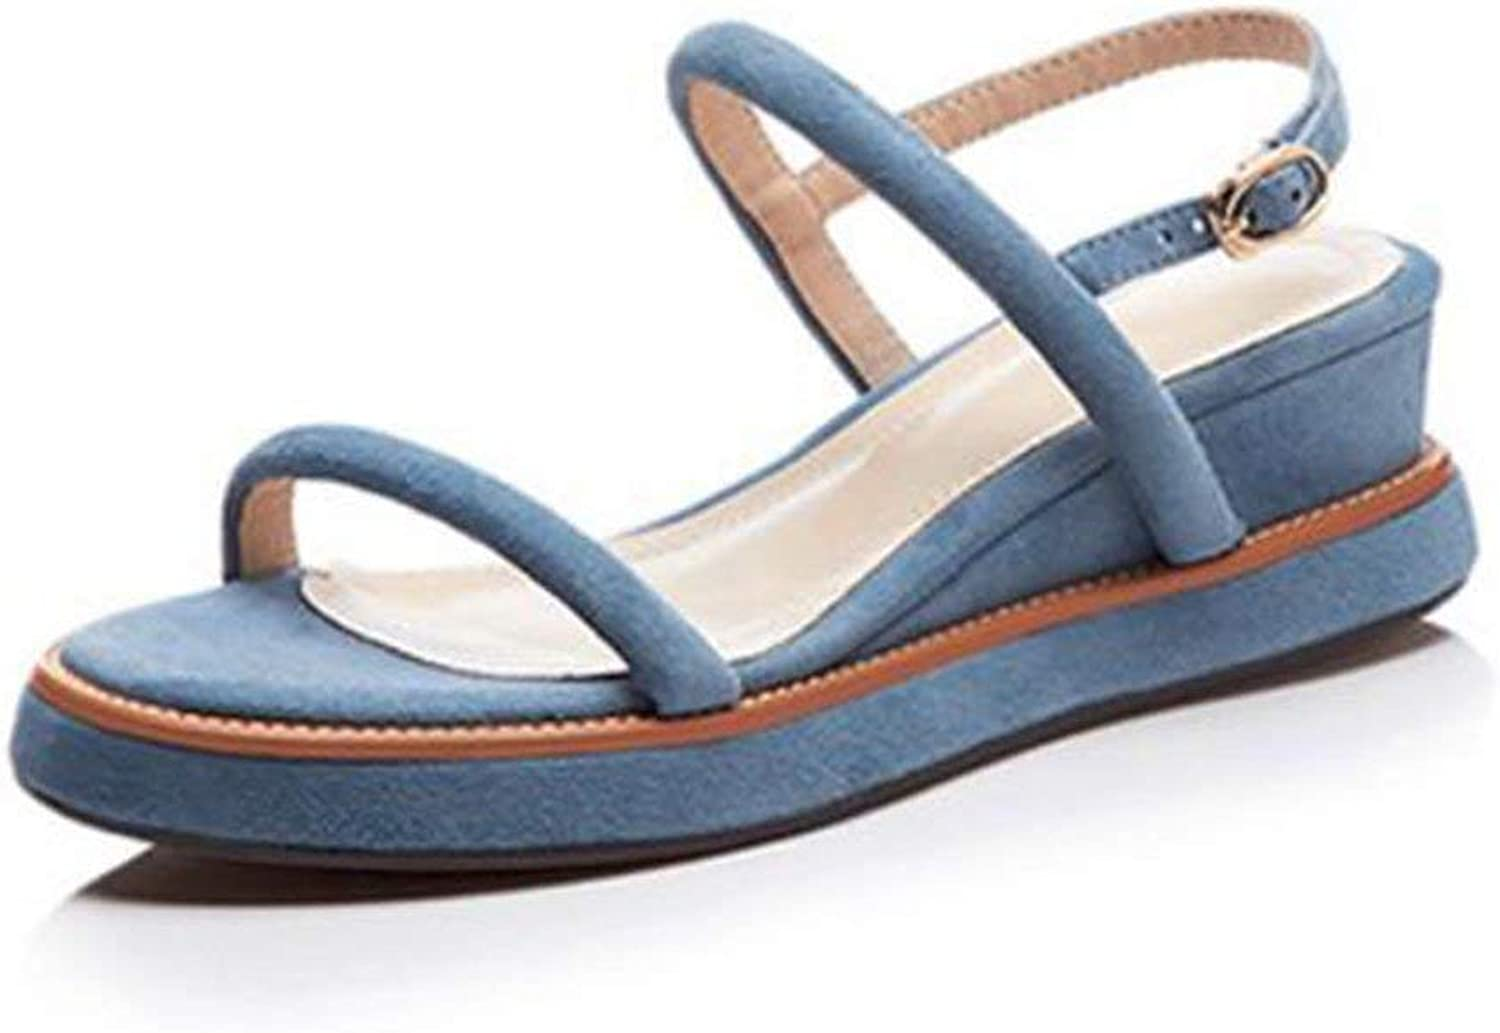 Comfortable and beautiful ladies sandals Sandals Summer Female Open Toe Middle Heel Single shoes Rubber Material